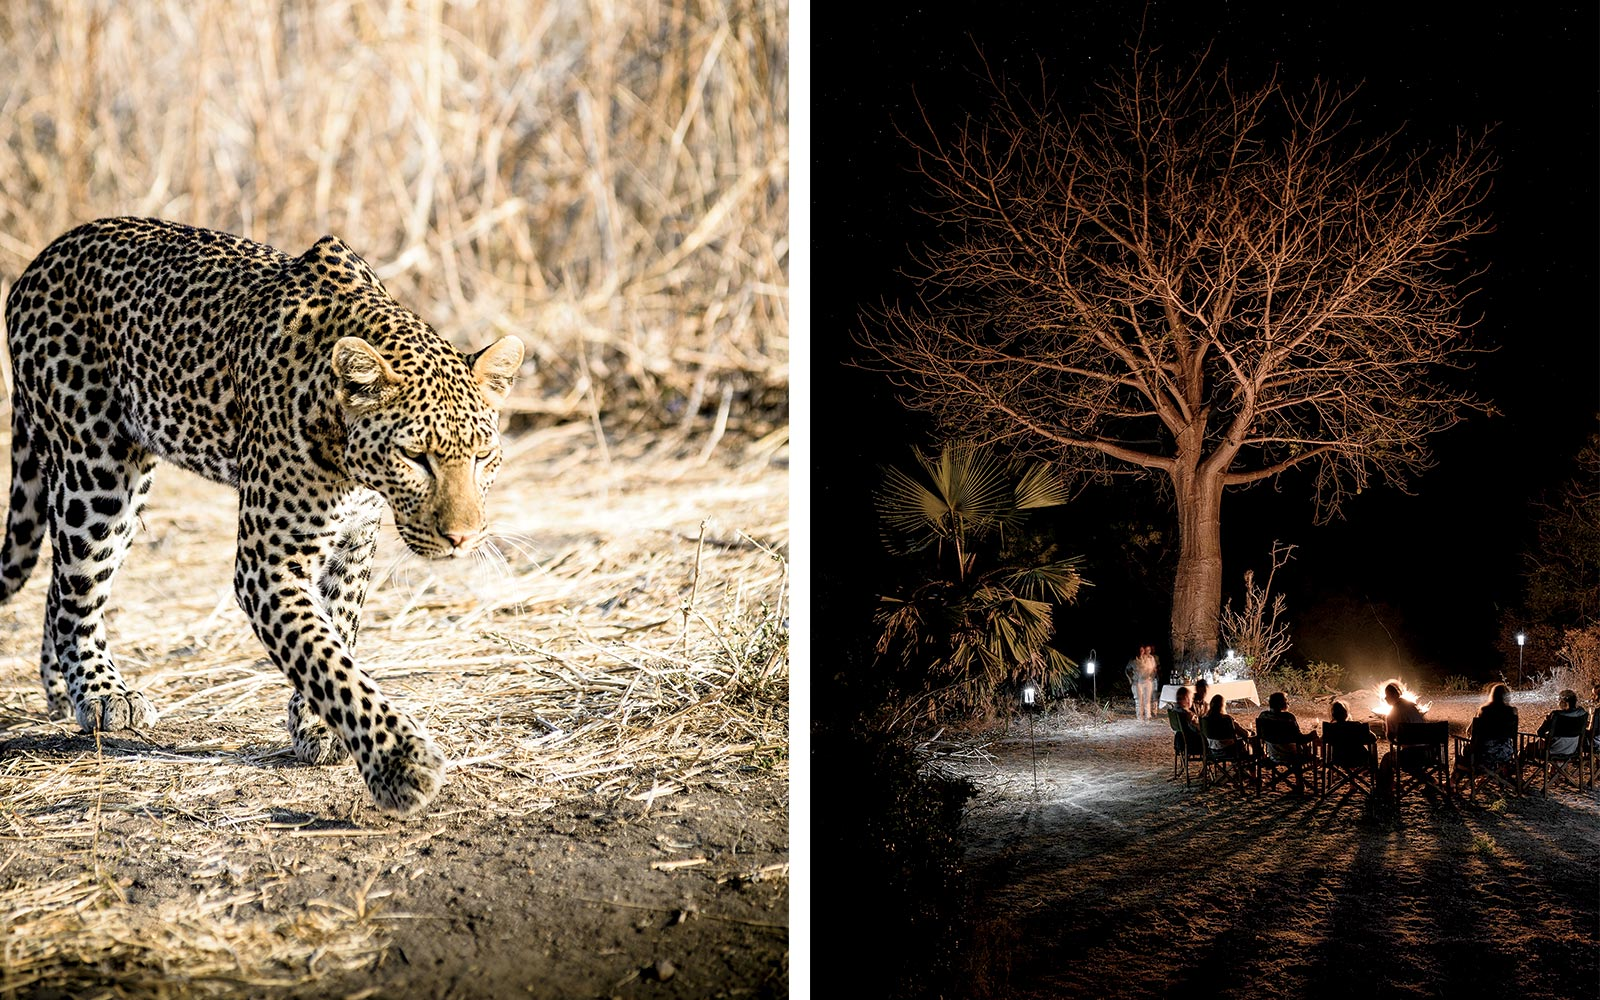 A leopard in Ruaha National Park, and a scene around the Roho ya Selous campfire